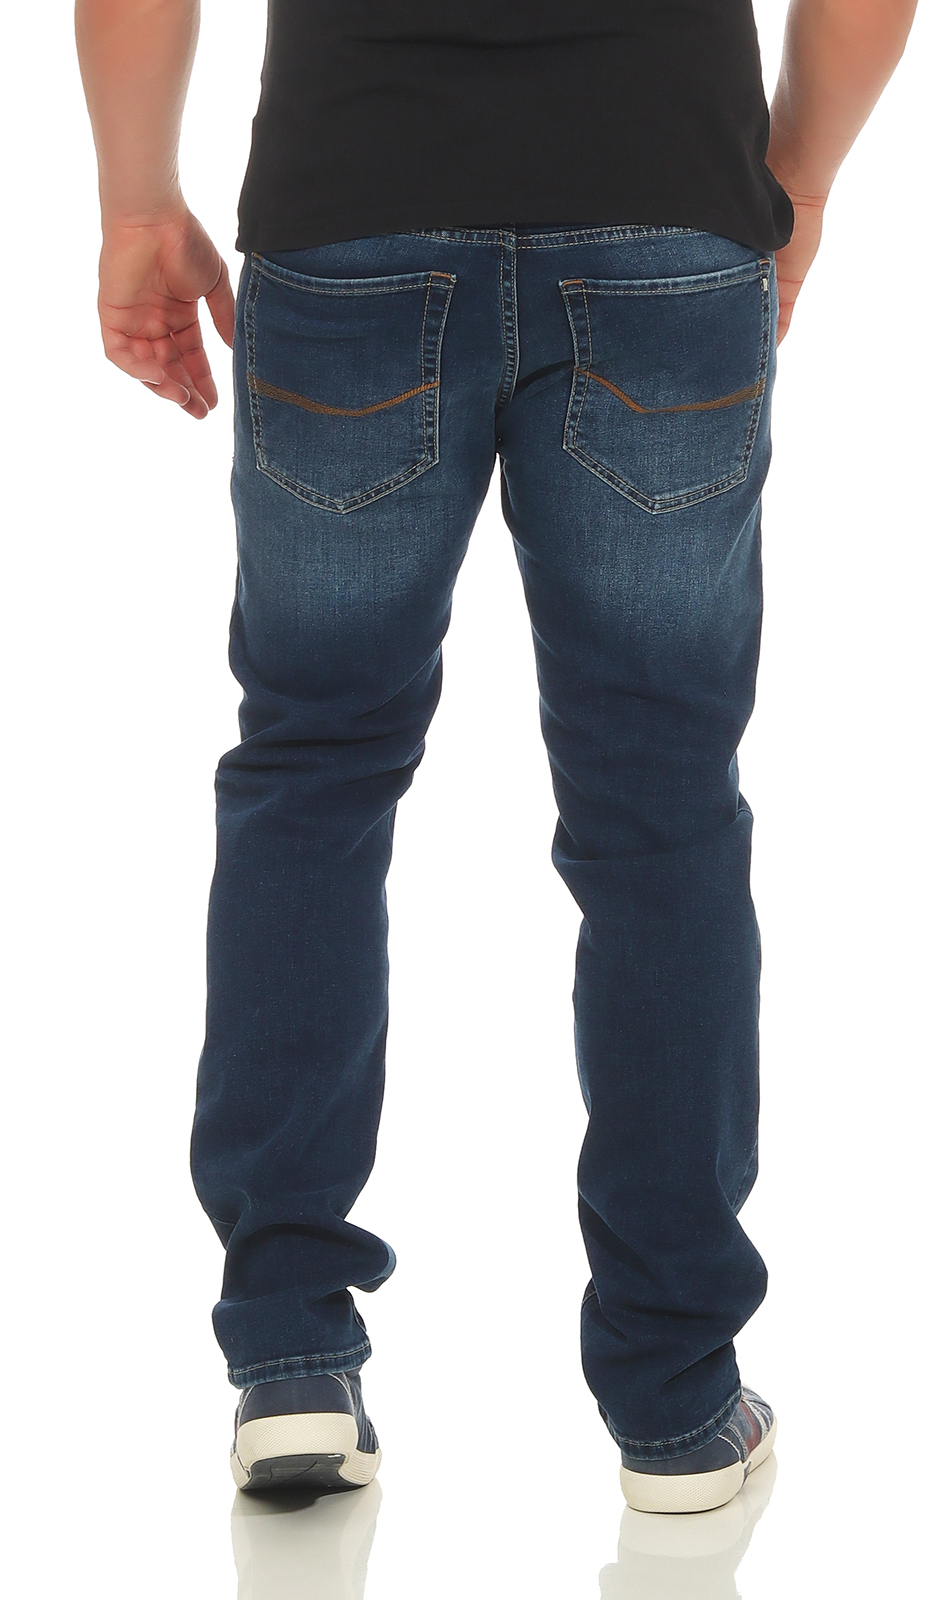 PIERRE-CARDIN-Herren-Jeans-Lyon-Hose-Tapered-Future-Flex-Super-Stretch-Premium-3 Indexbild 8